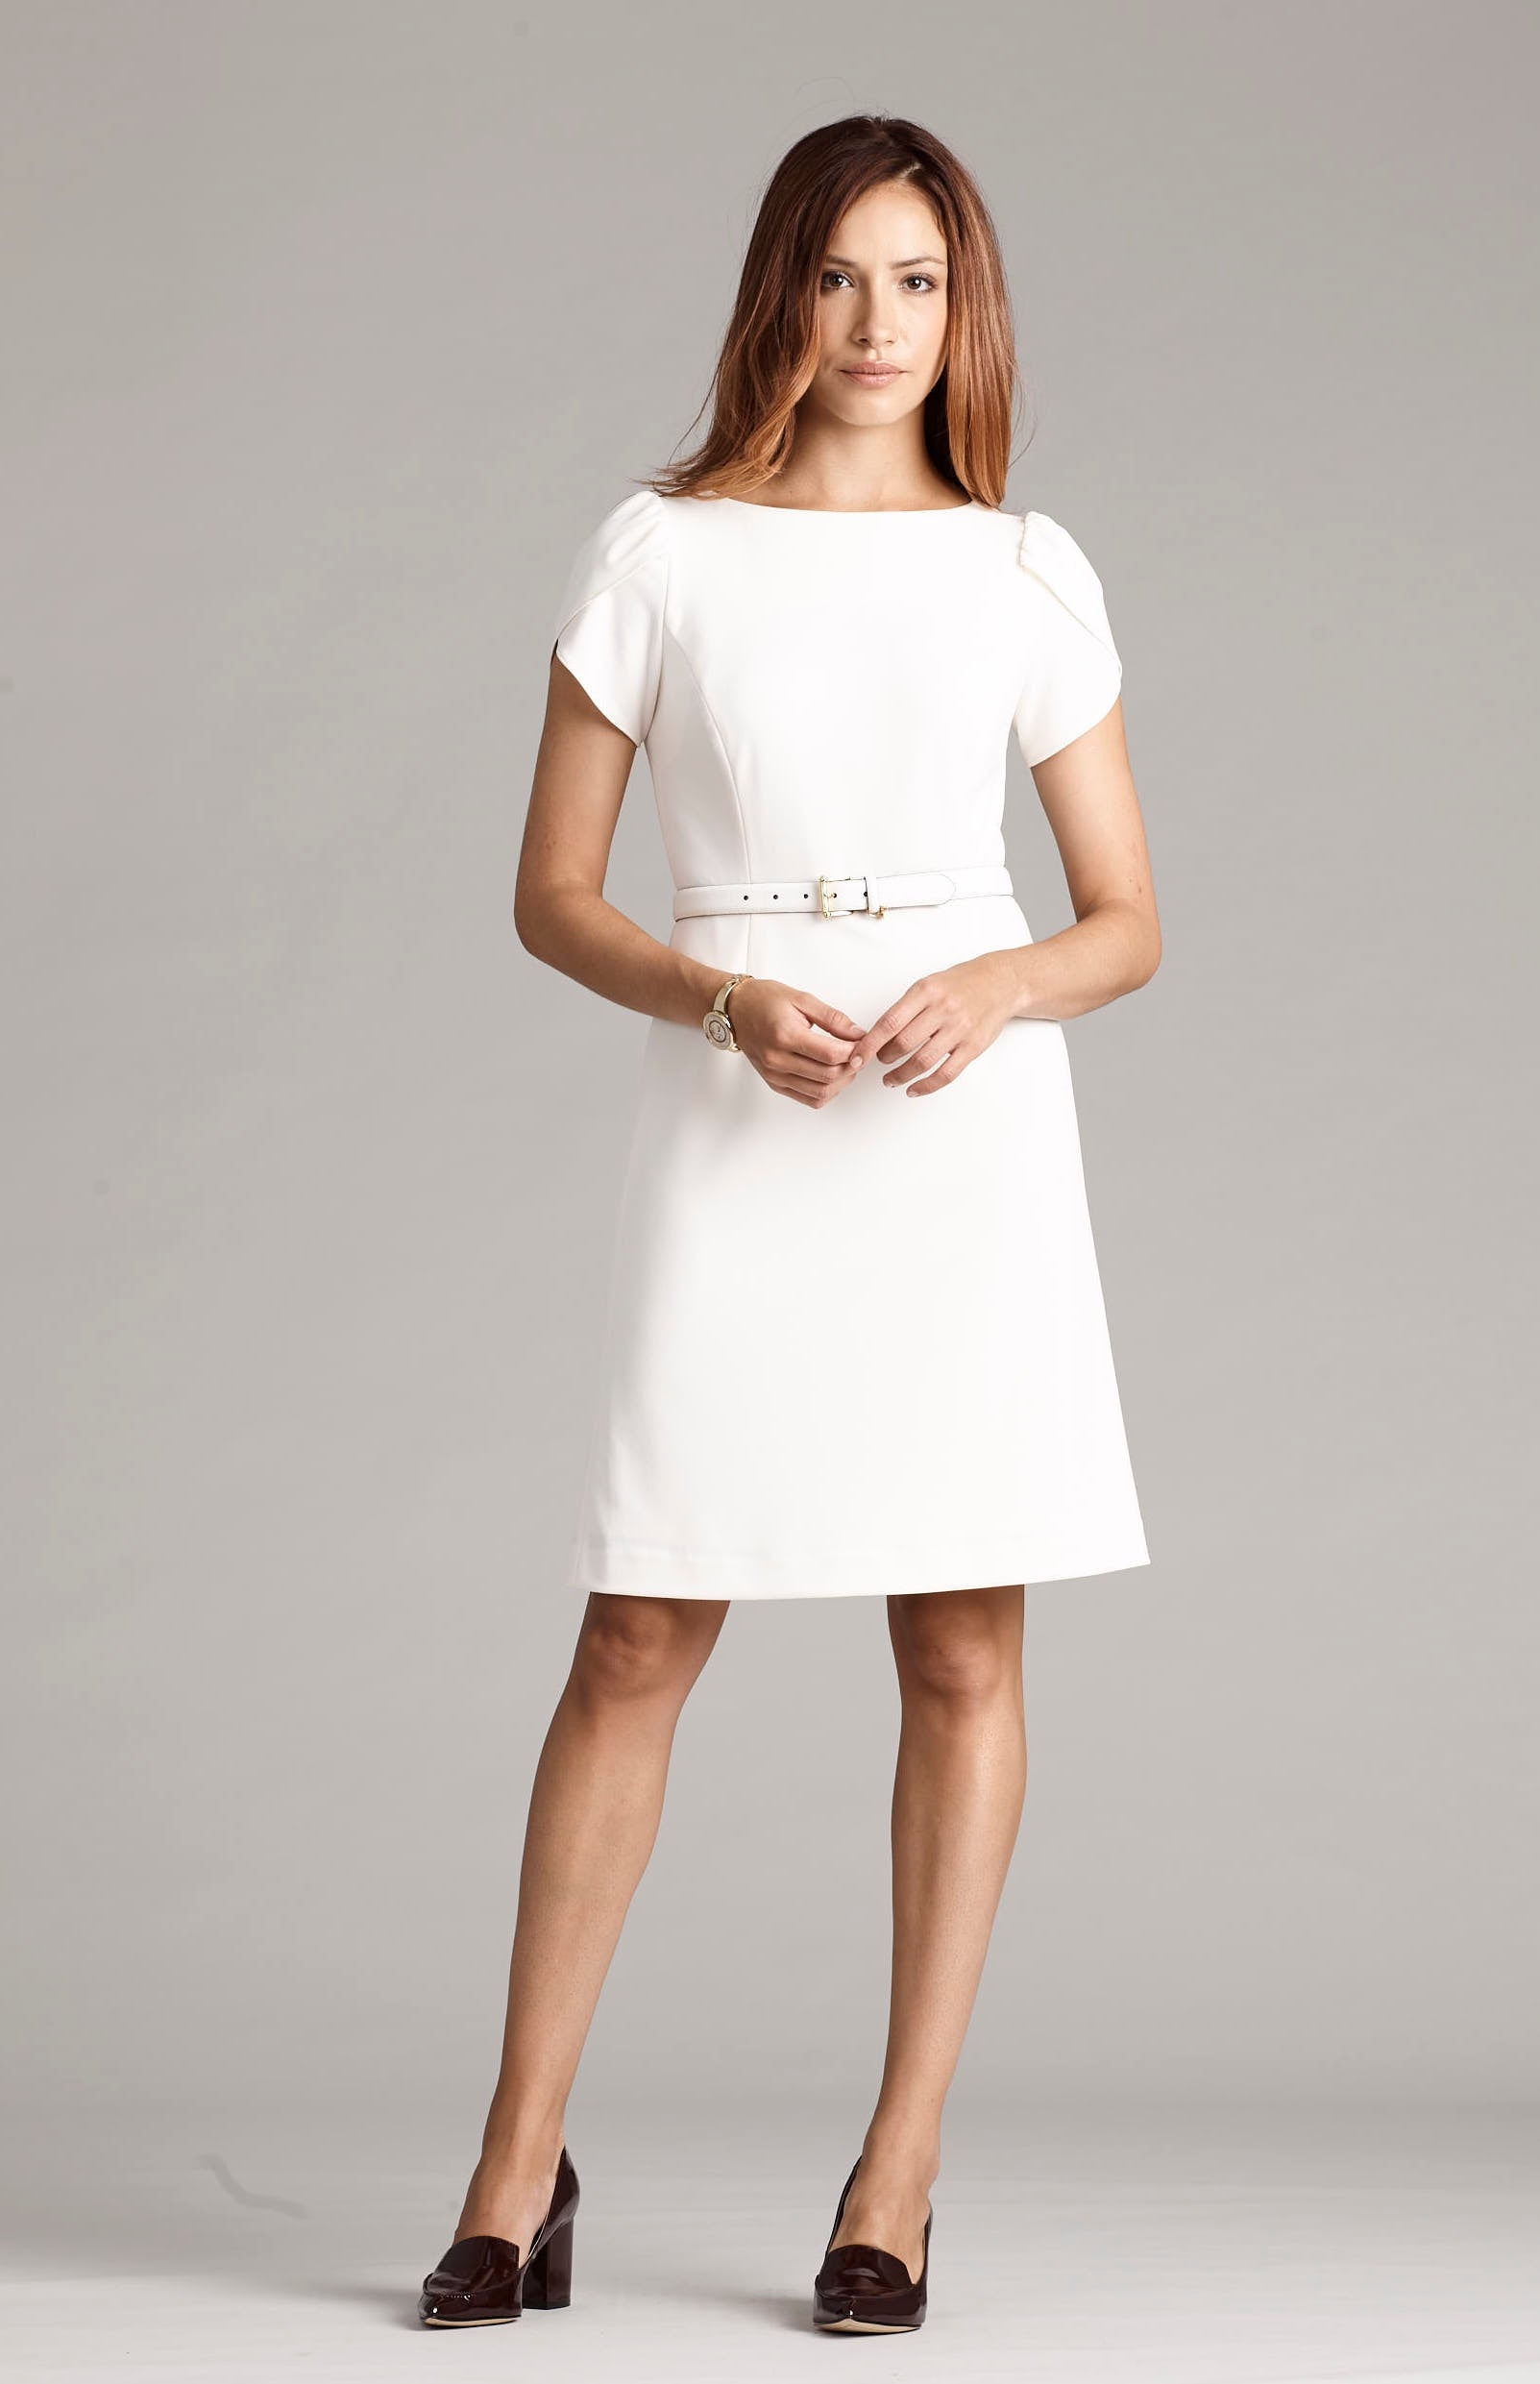 Etta Petal Sleeve Dress - Cream